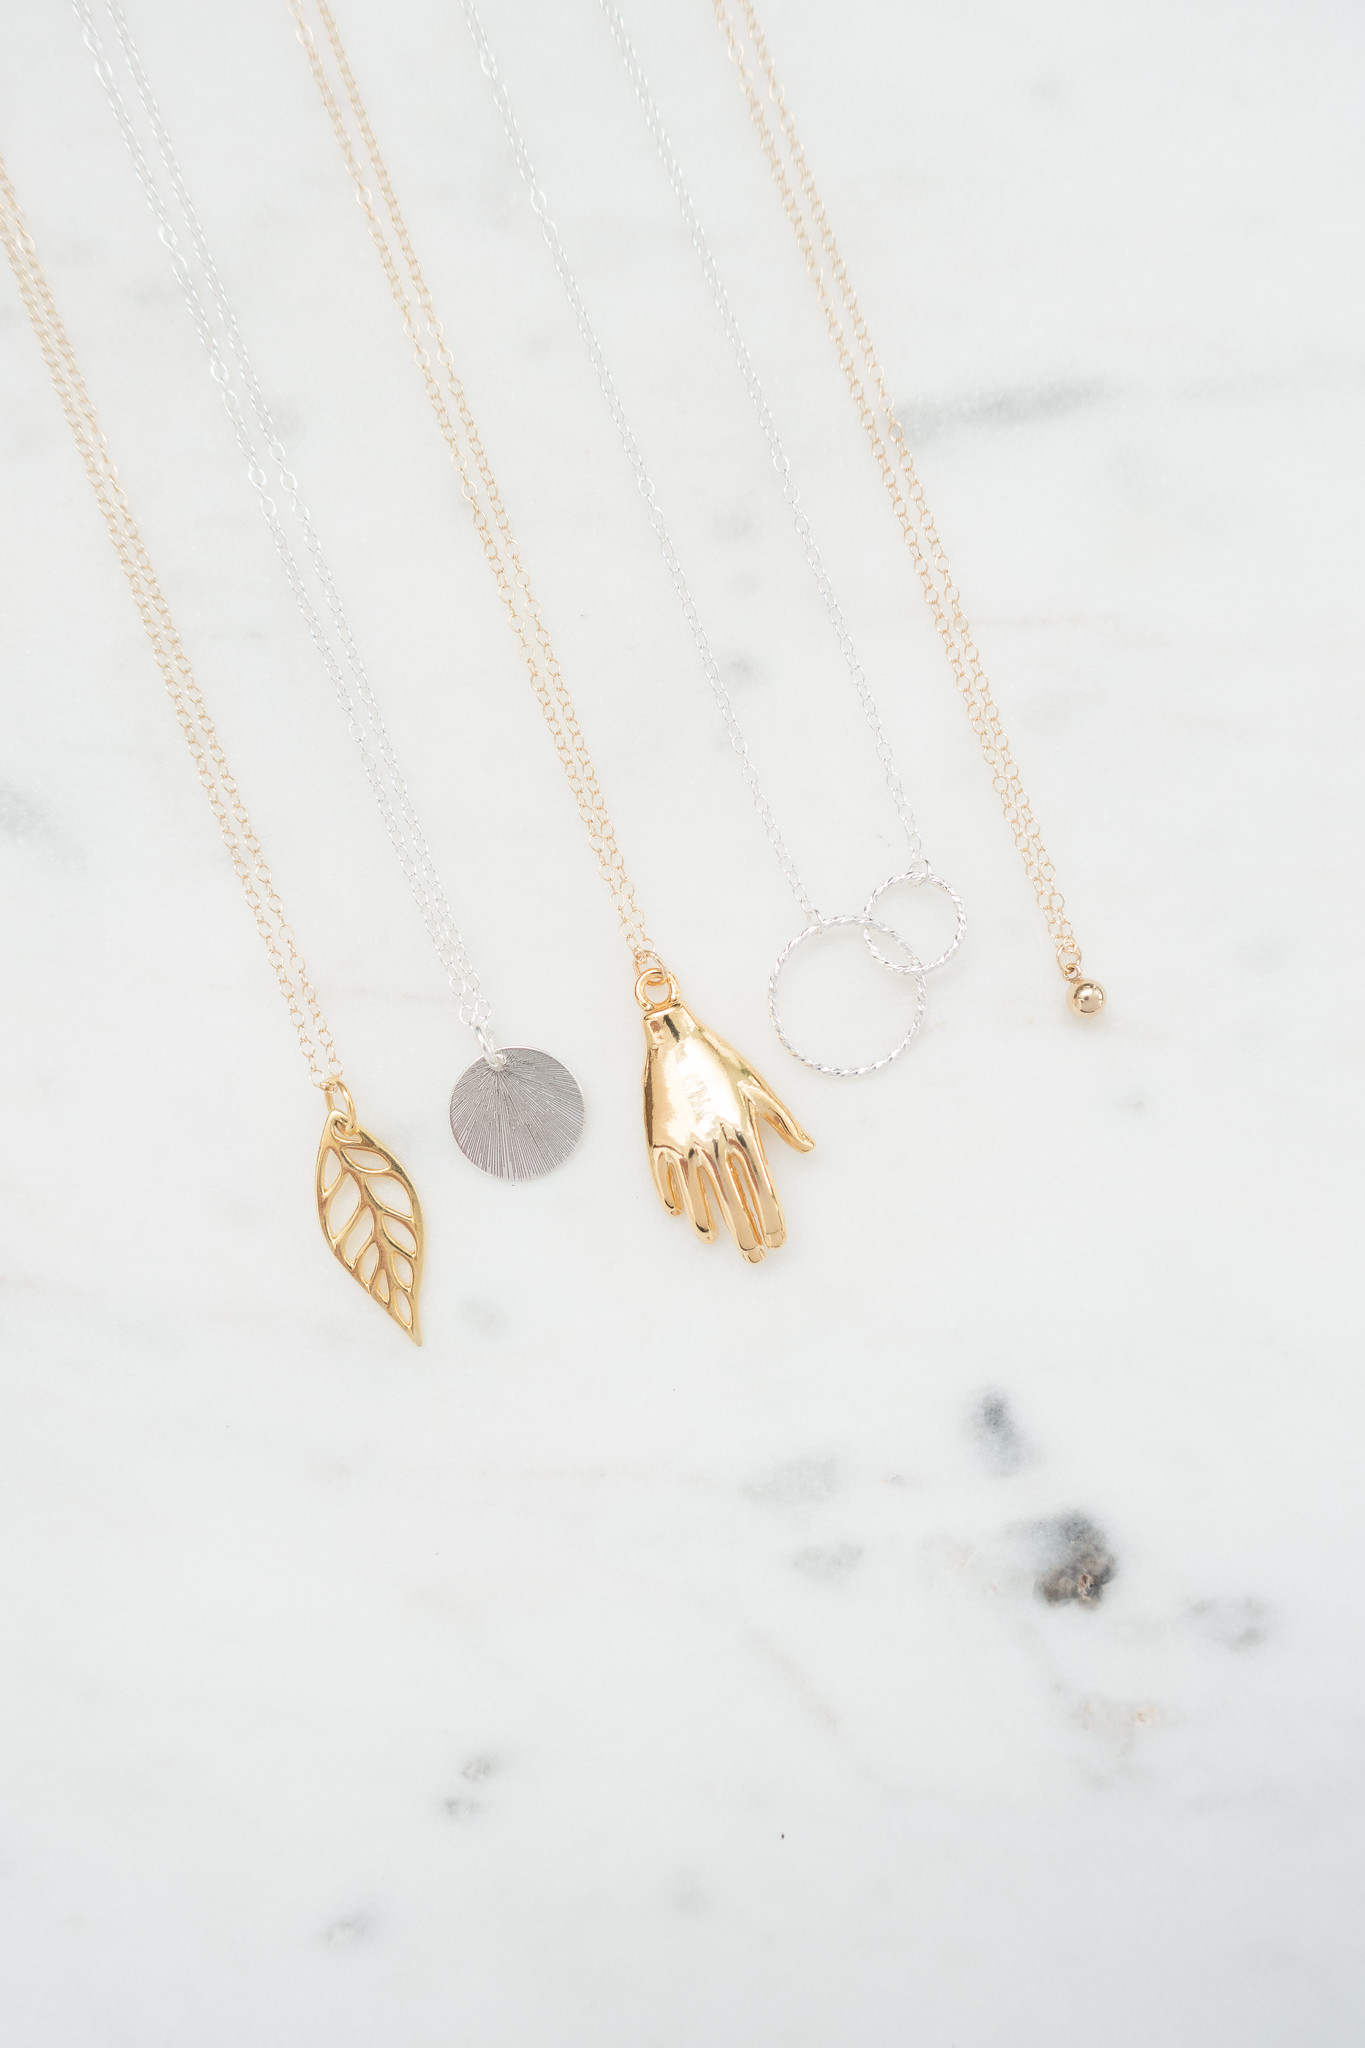 New Minimal Jewellery For Spring/Summer 2020